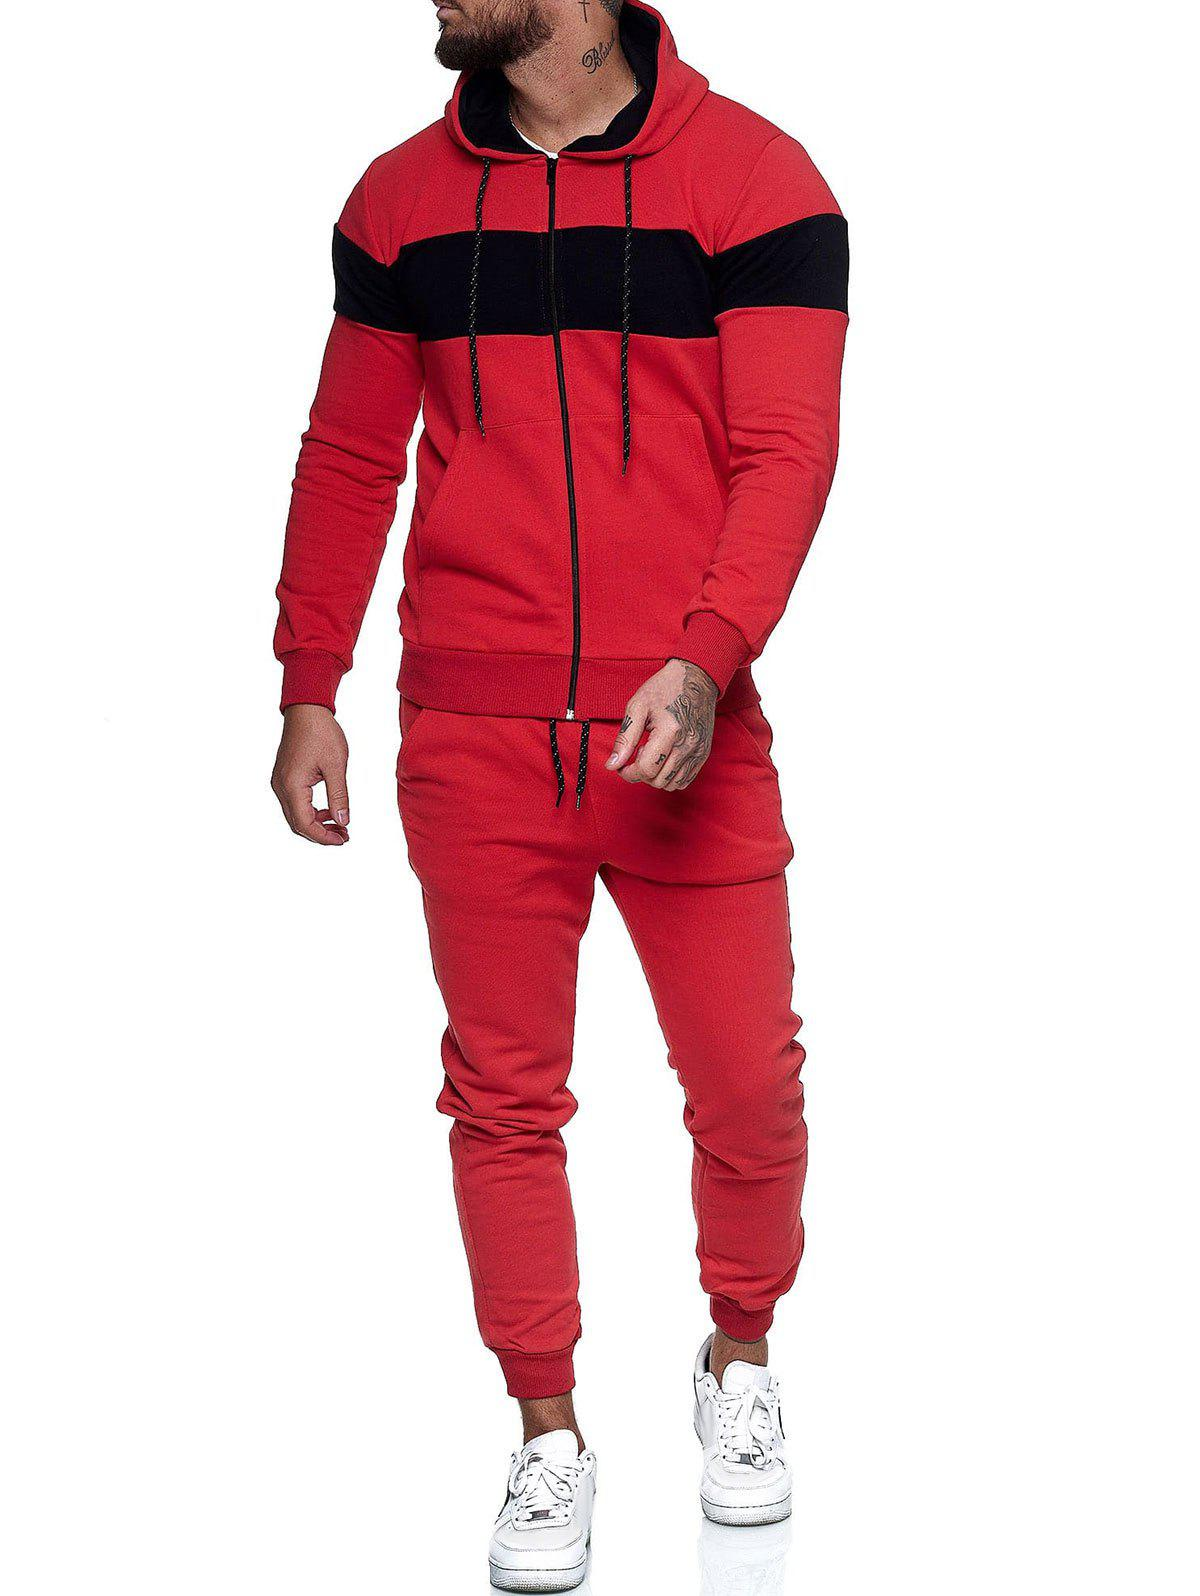 Online Contrast Zip Up Hoodie Jacket and Pants Sports Two Piece Set